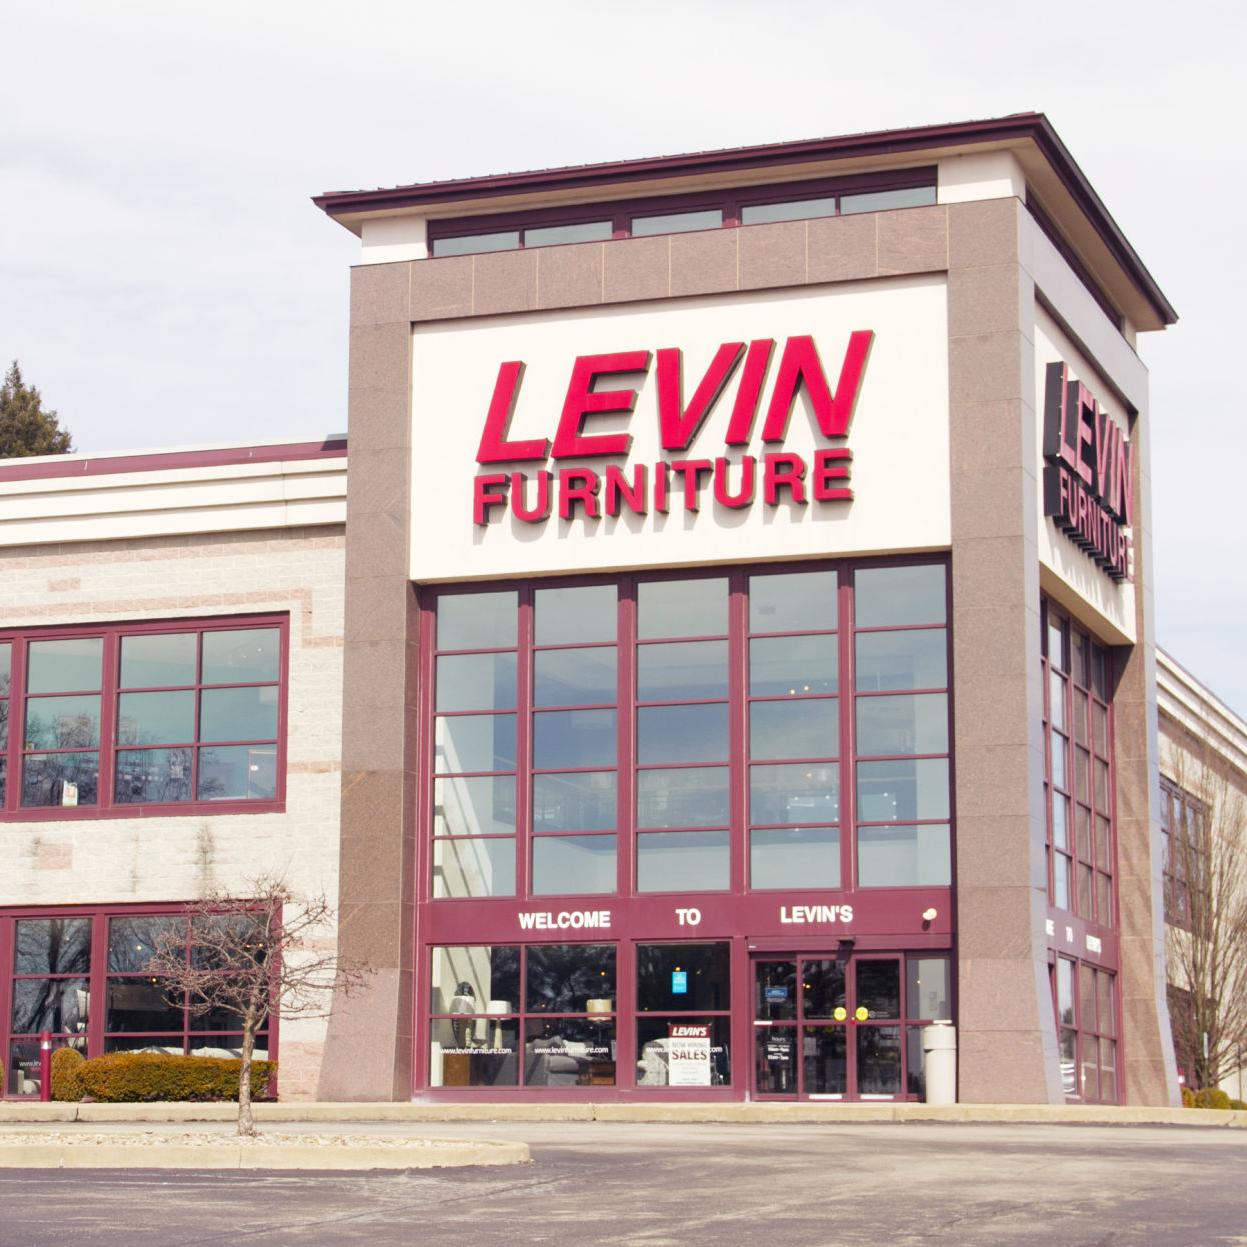 Former Owner Furnishes A Rescue Of Levin Furniture Local News Observer Reporter Com